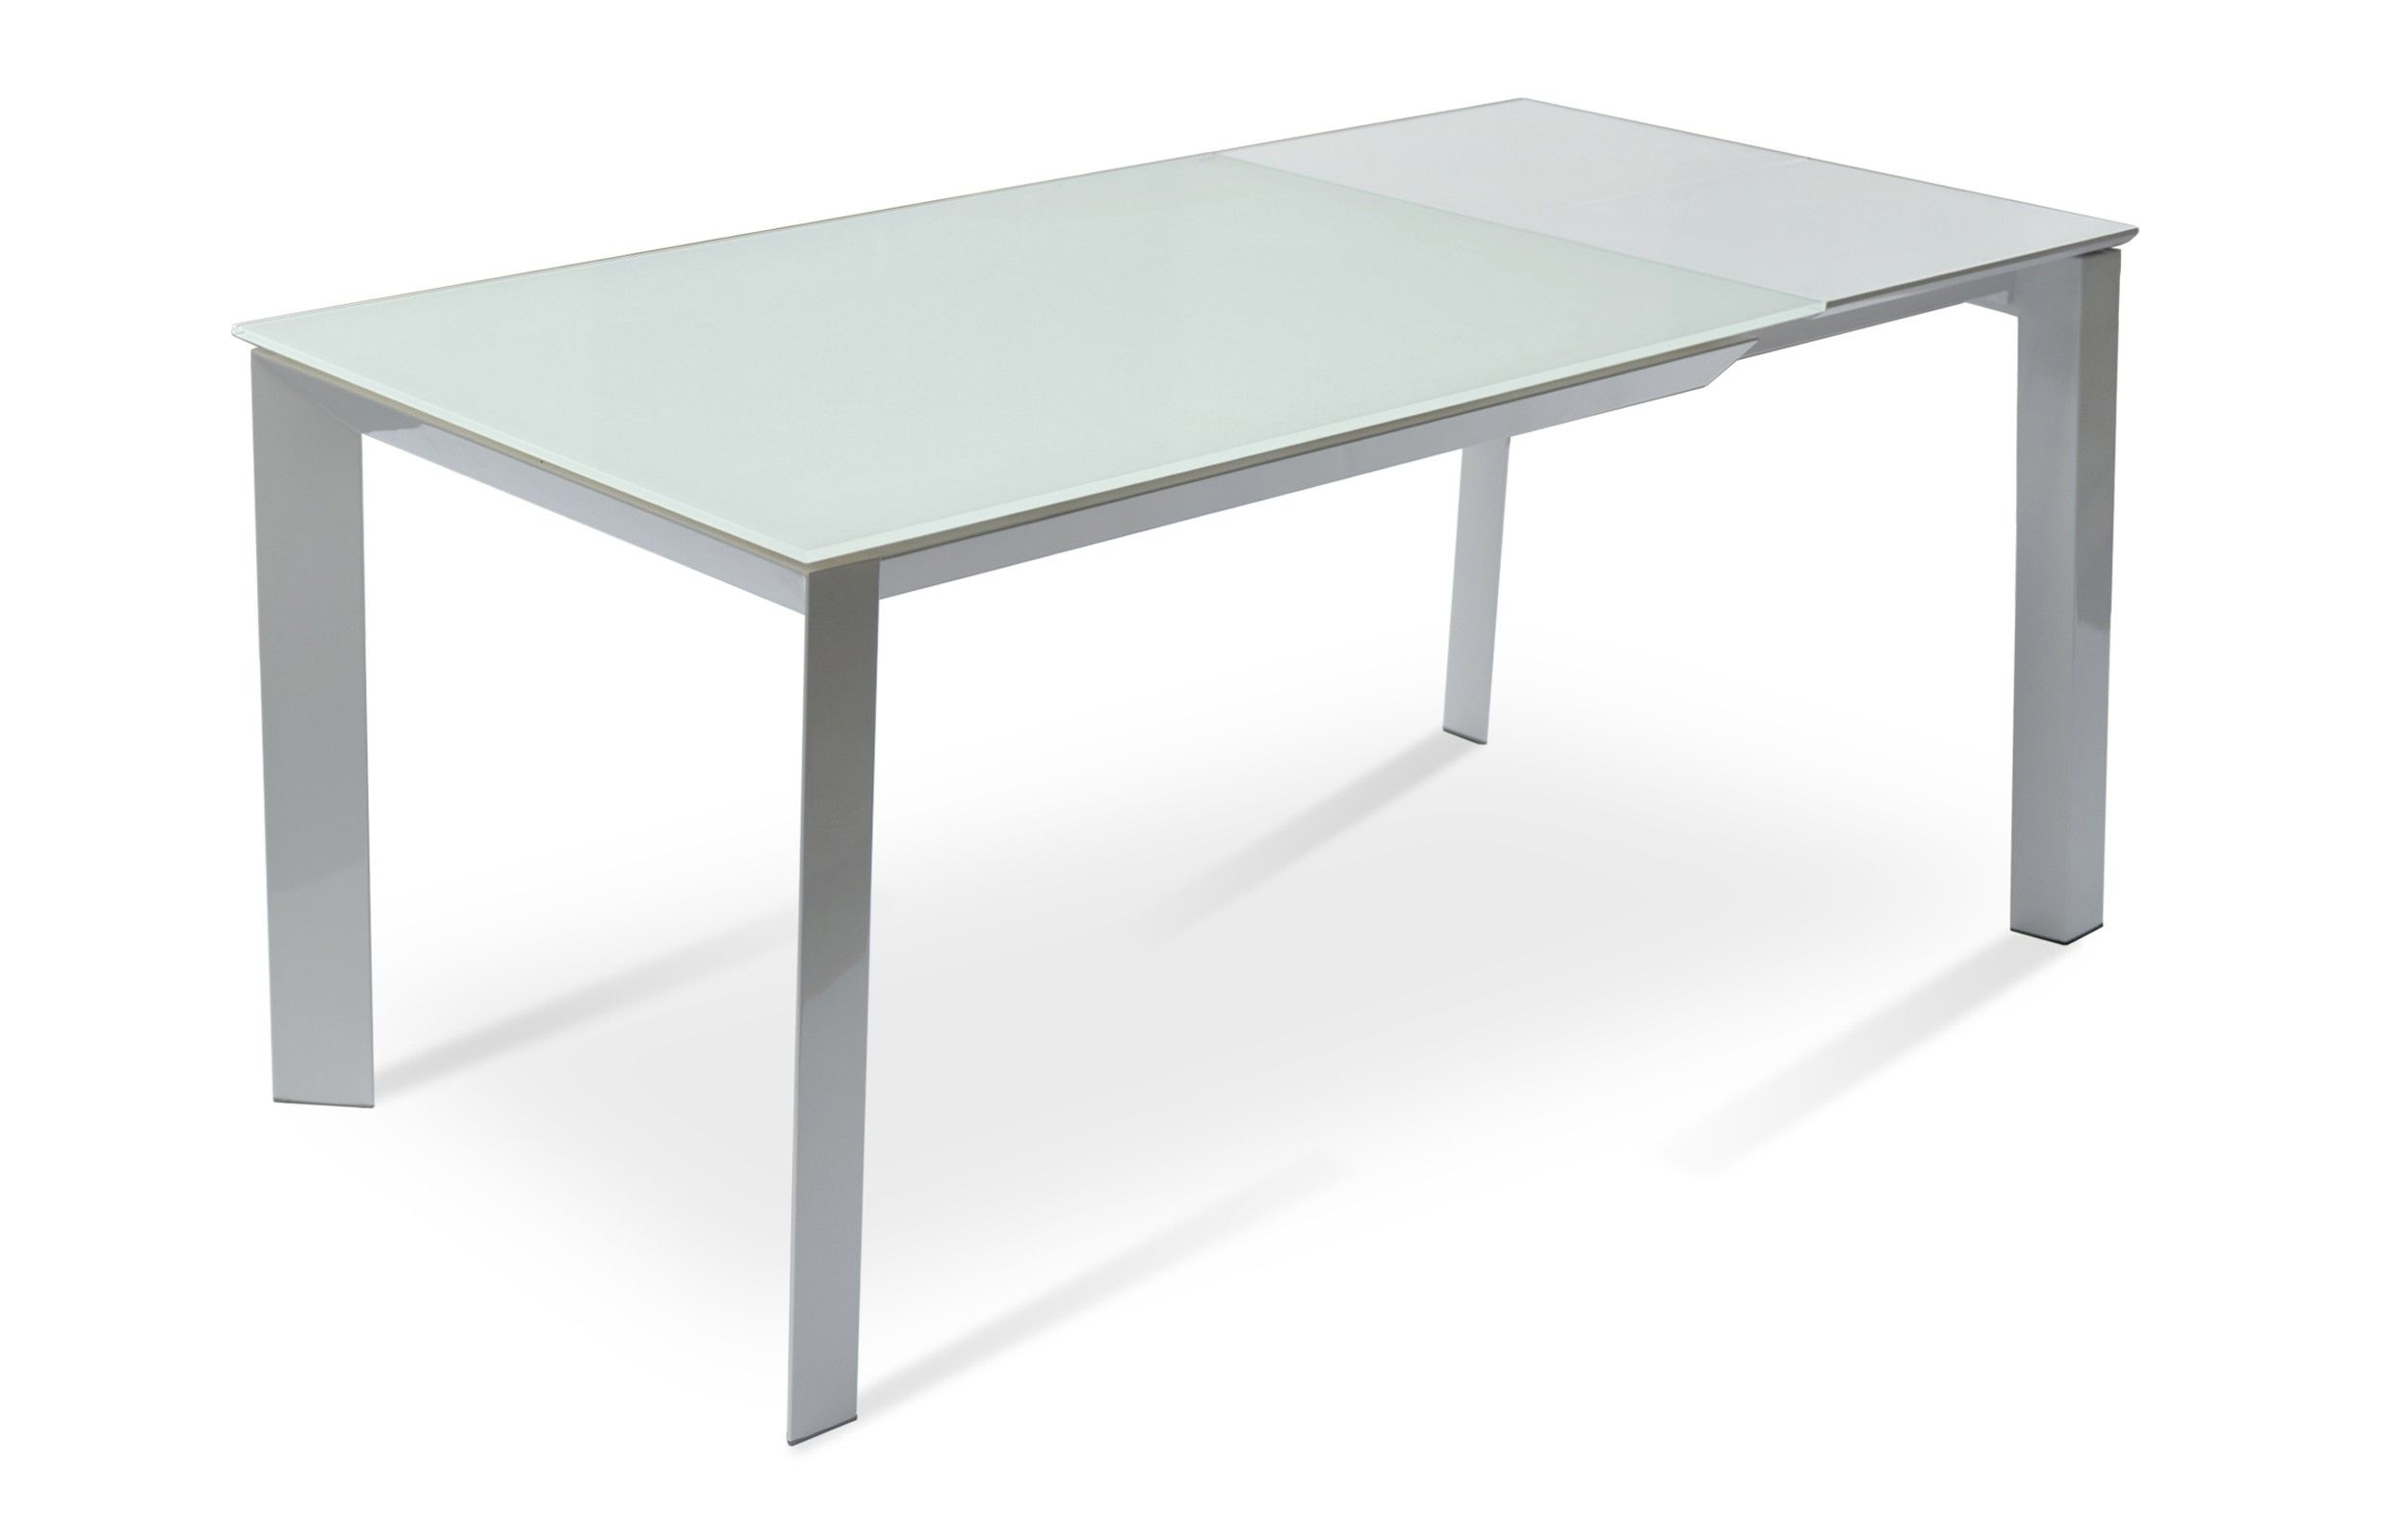 Milano Glass Extendable Dining Table | Dining Area | Pinterest With Regard To Most Current Ina Matte Black 60 Inch Counter Tables With Frosted Glass (Image 4 of 20)